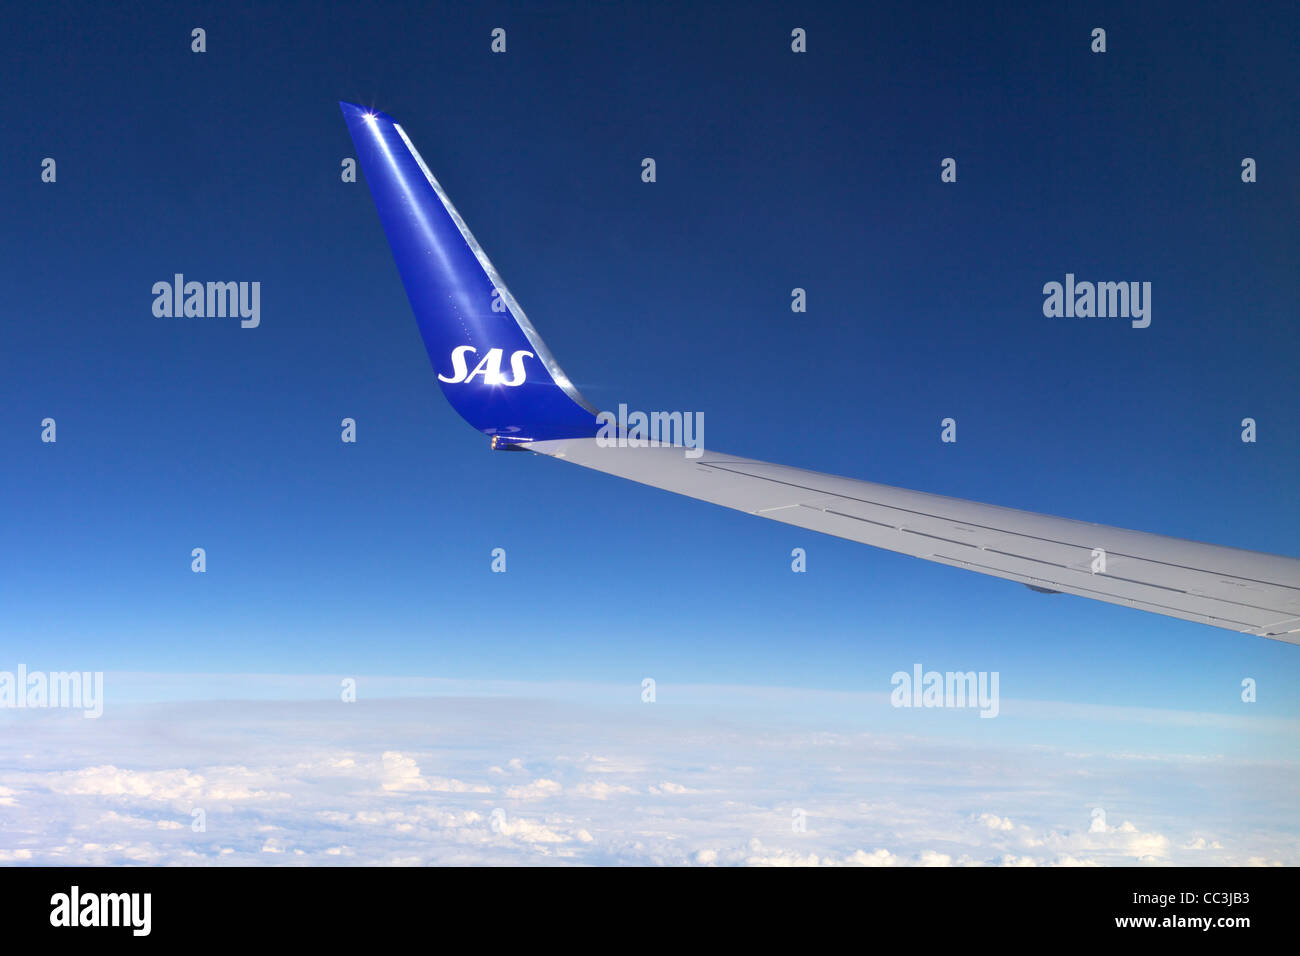 Scandinavian Air Services SAS wing from jet passenger window against polarised blue sky - Stock Image